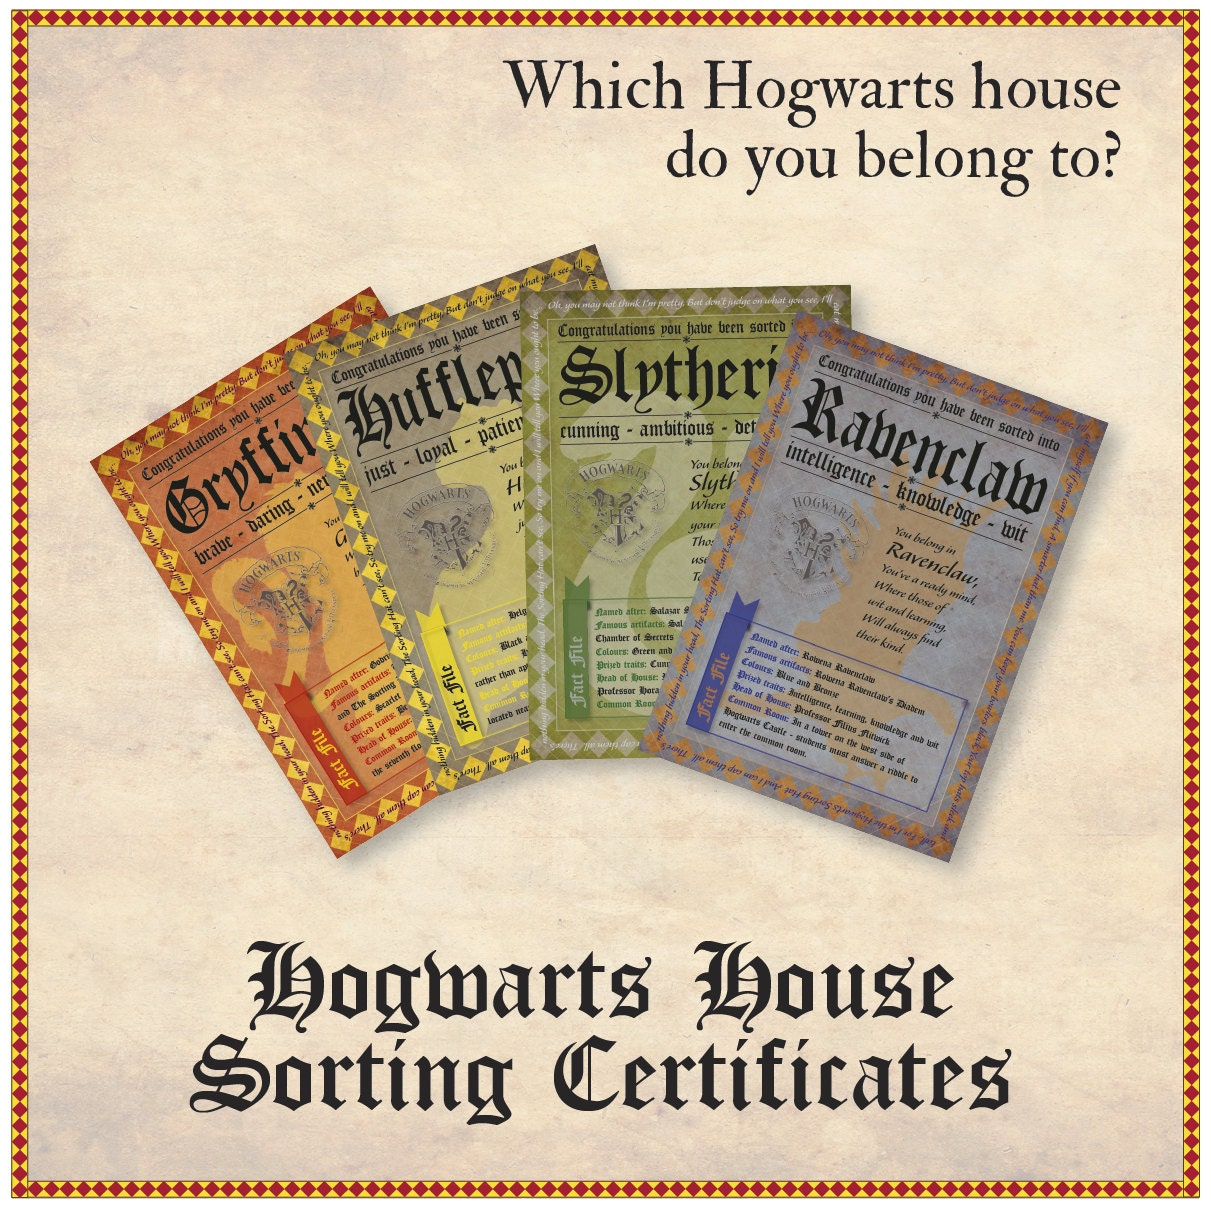 Hogwarts house certificates for Hogwarts certificate